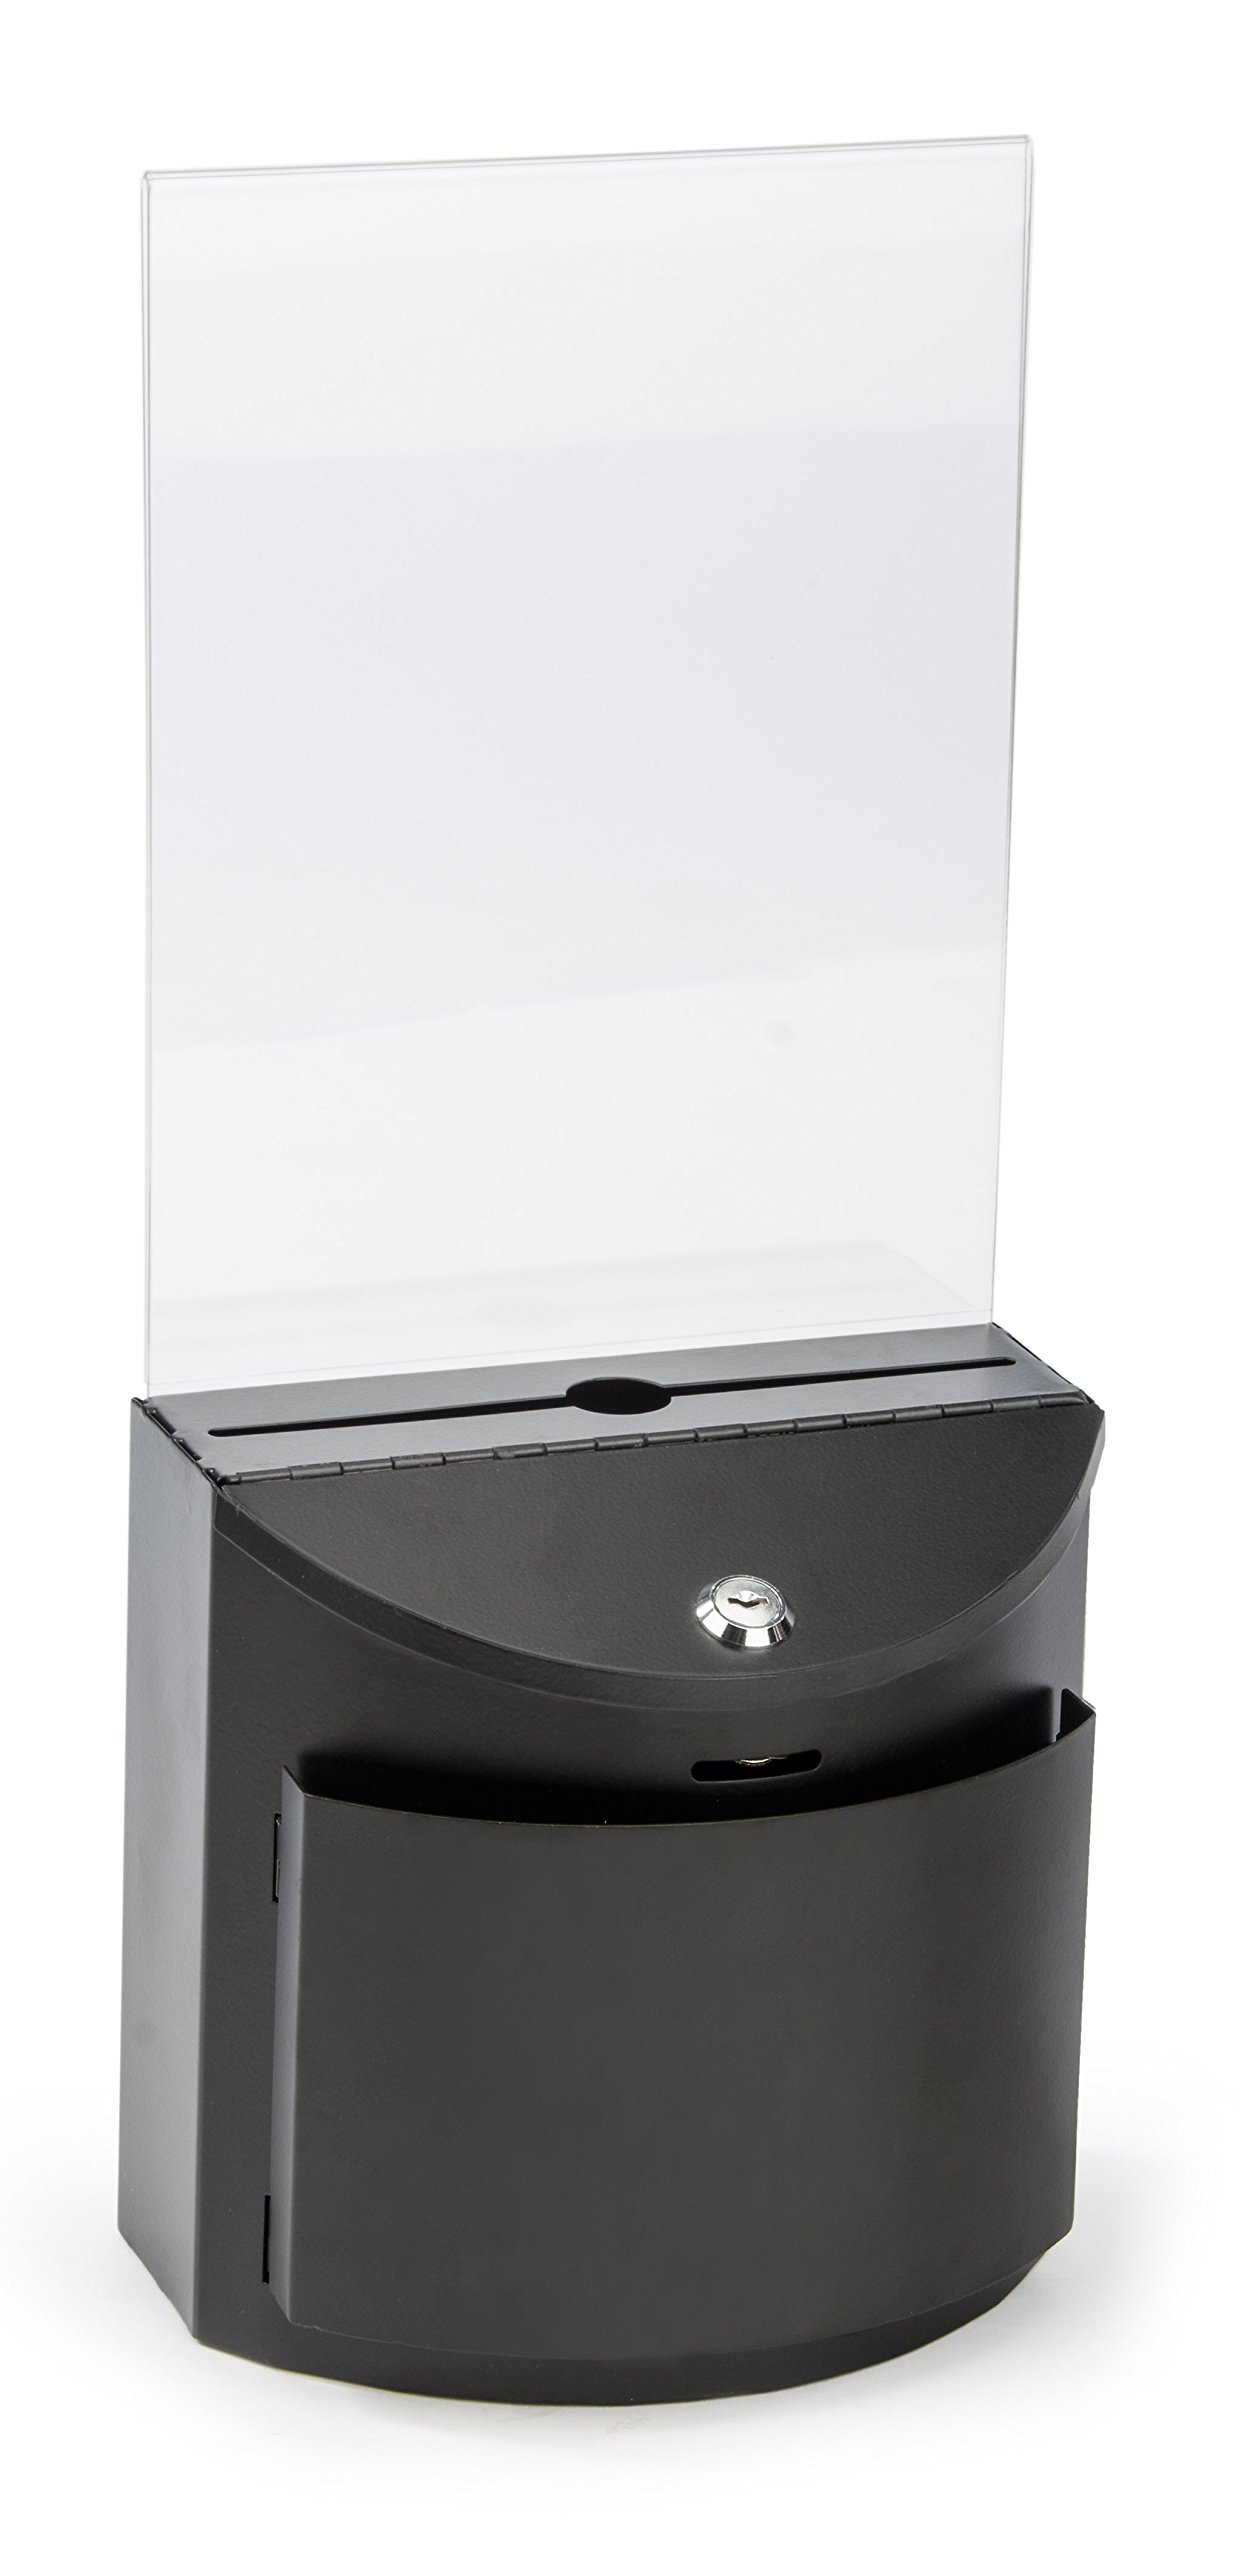 Displays2go Slim Ballot and Suggestion Box, Locking, Blank Comment Card Pocket, 8.5 x 11 Inches Sign Holder, Black Metal (MSB8511BLK)